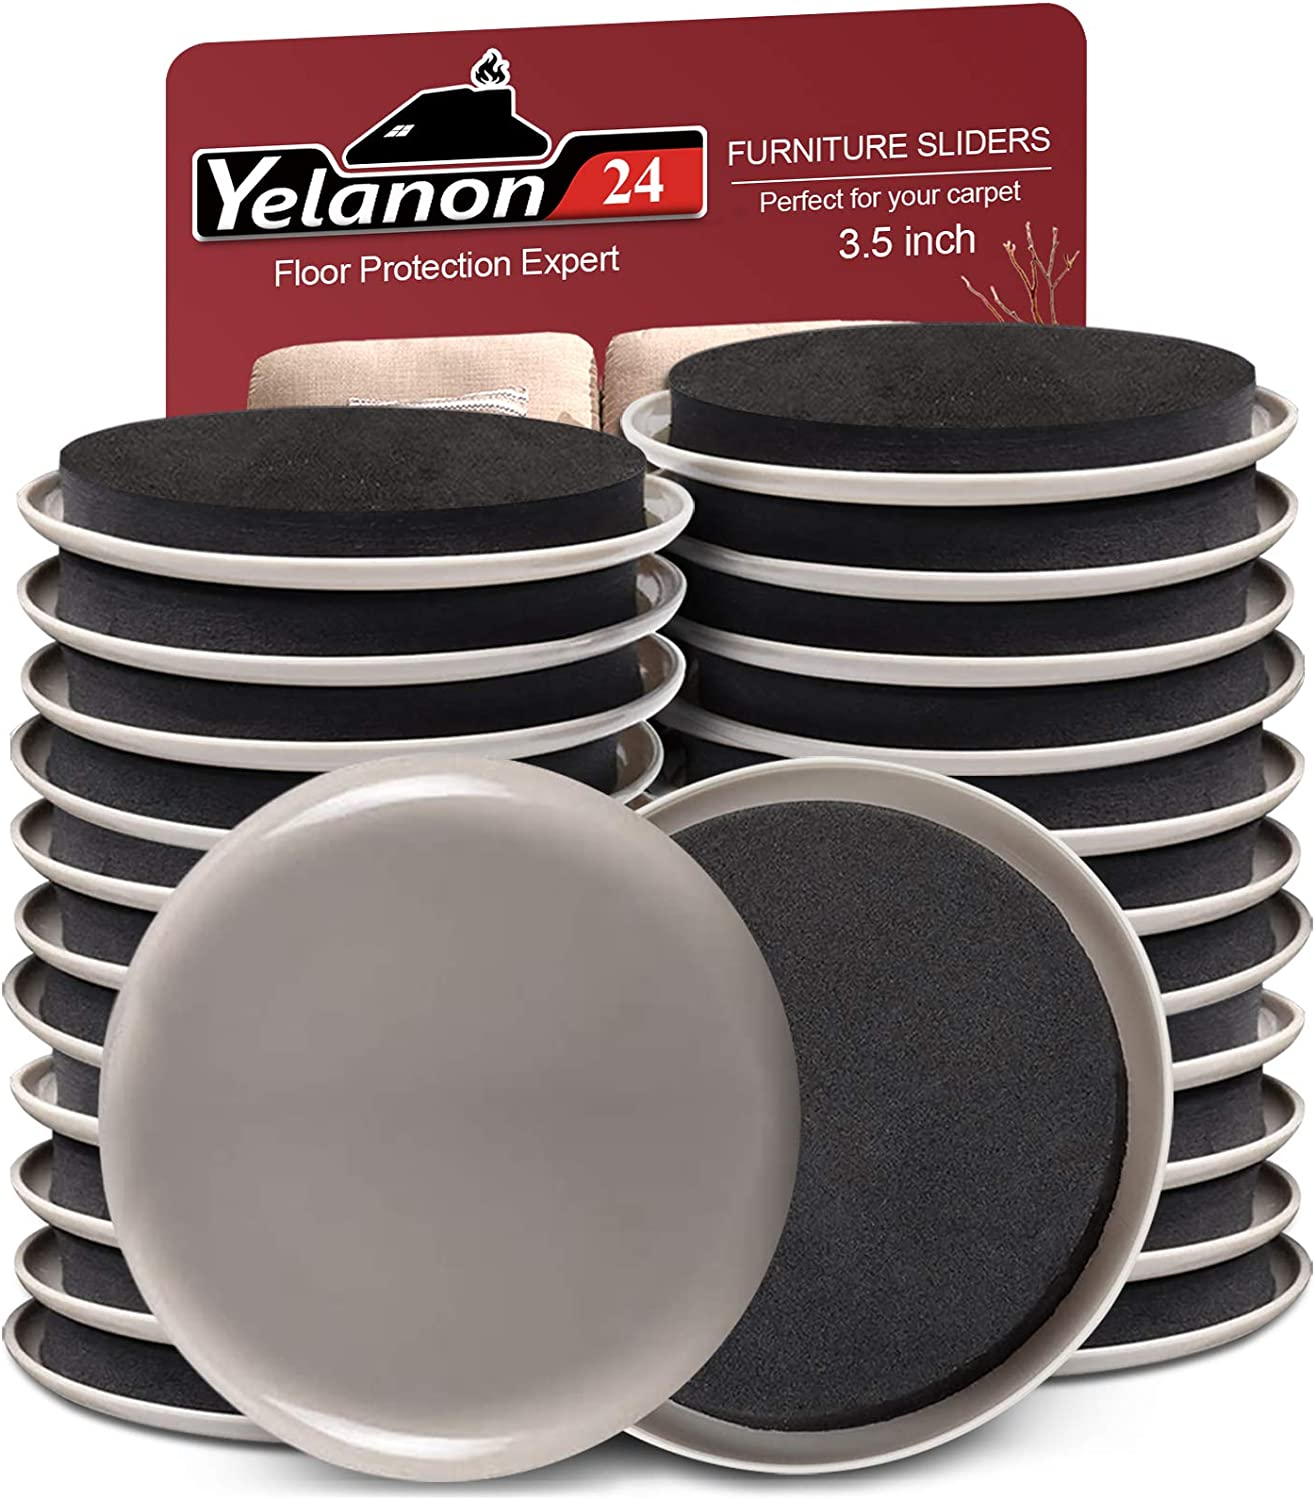 """Yelanon Furniture Sliders 24pcs - 3 1/2"""" Furniture Sliders for Carpet Reusable Furniture Moving Pads Heavy Duty Furniture Movers Kit, Protect All Carpet Surfaces, Move Heavy Furniture Easy and Quickly"""